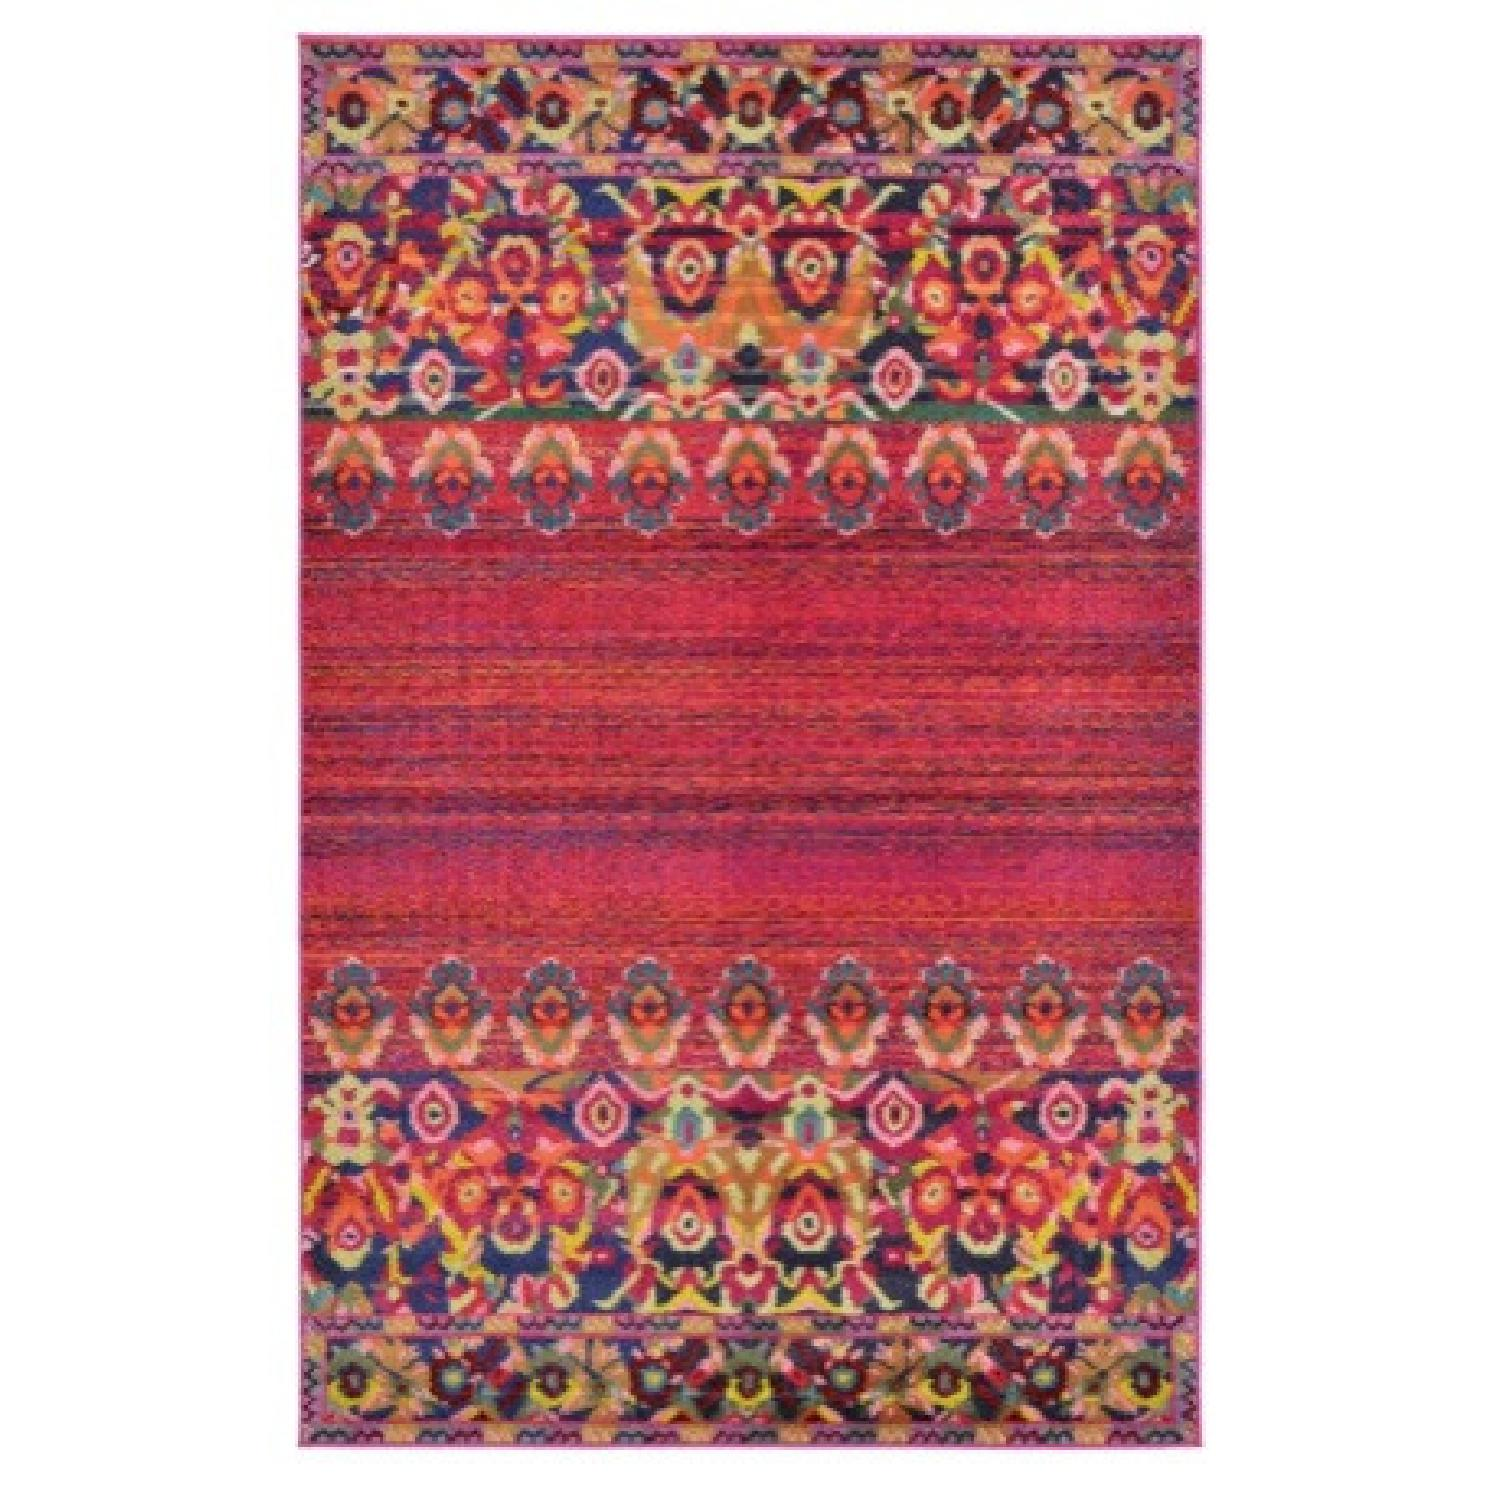 Wayfair Multicolored Red/Pink barely used Area rug - image-3